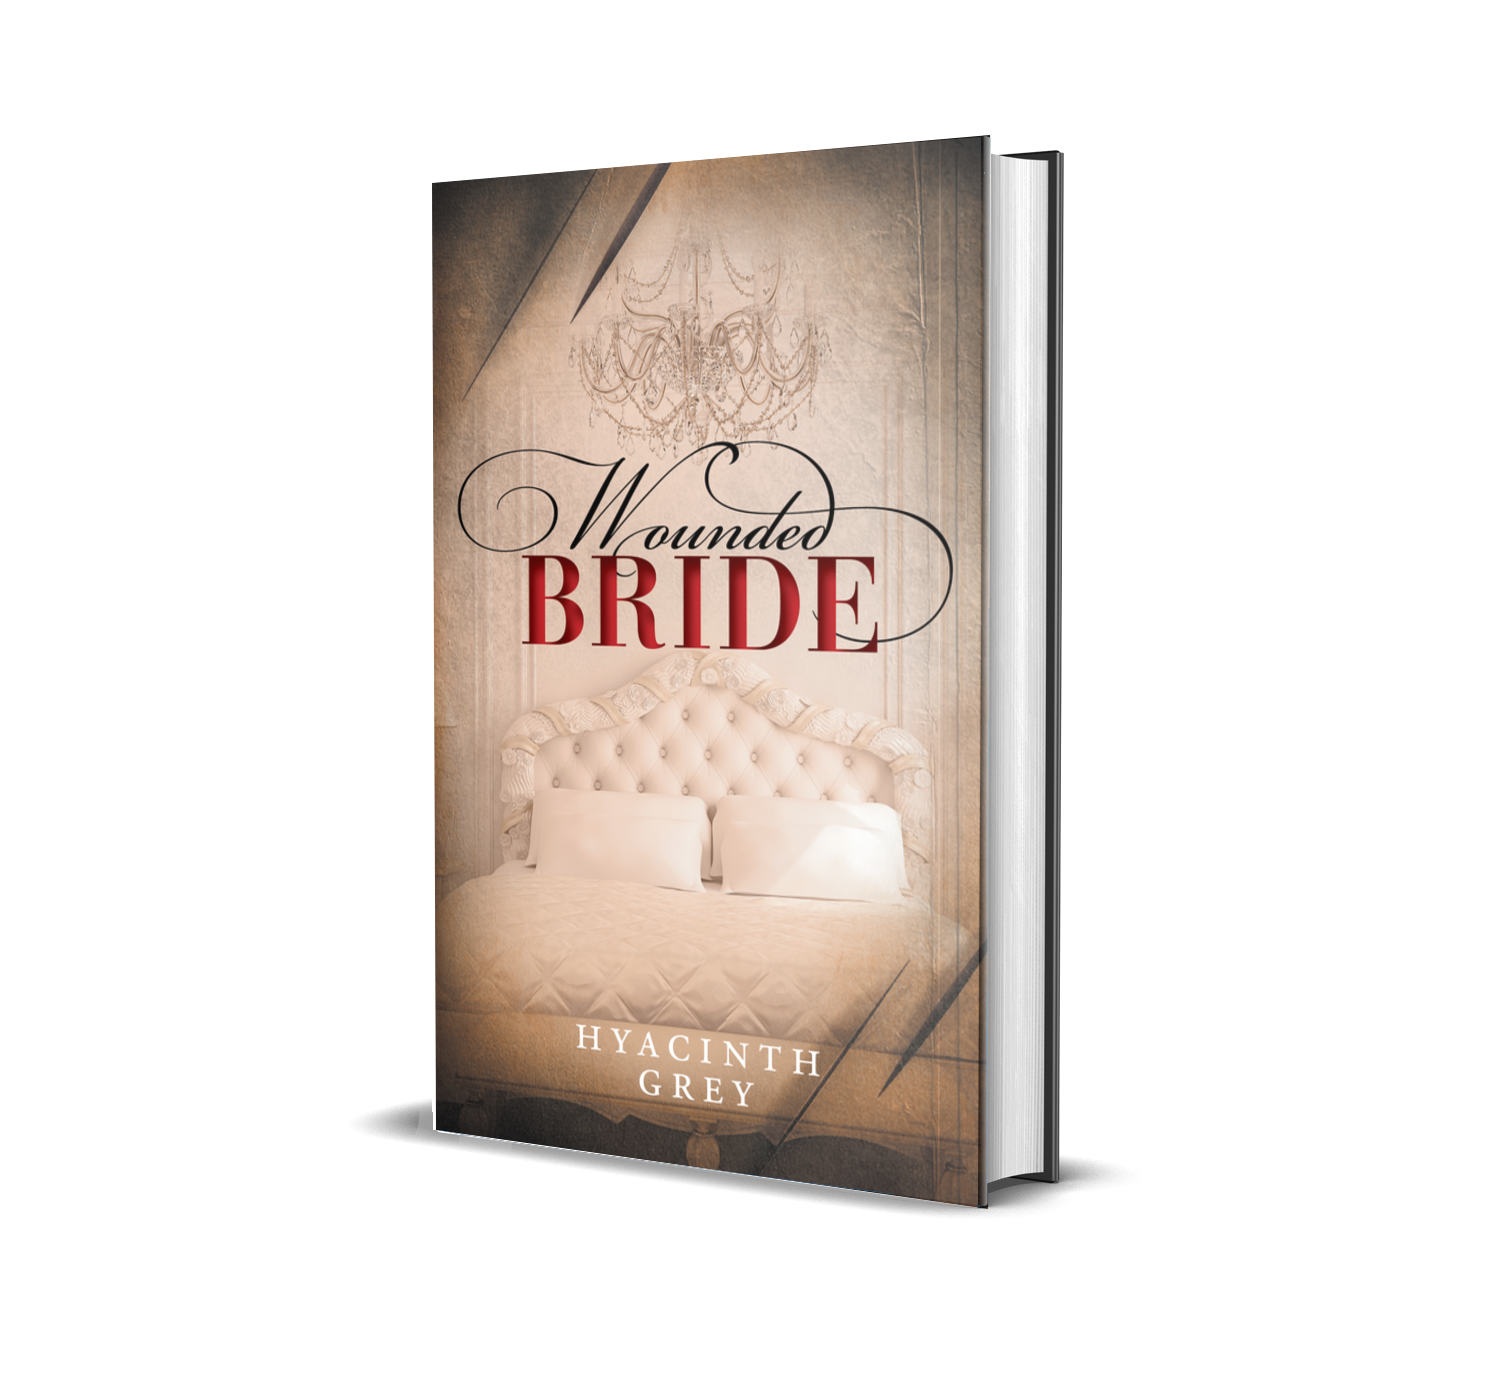 Click on this 3D mockup Hardcover image to be taken to the Wounded Bride page.